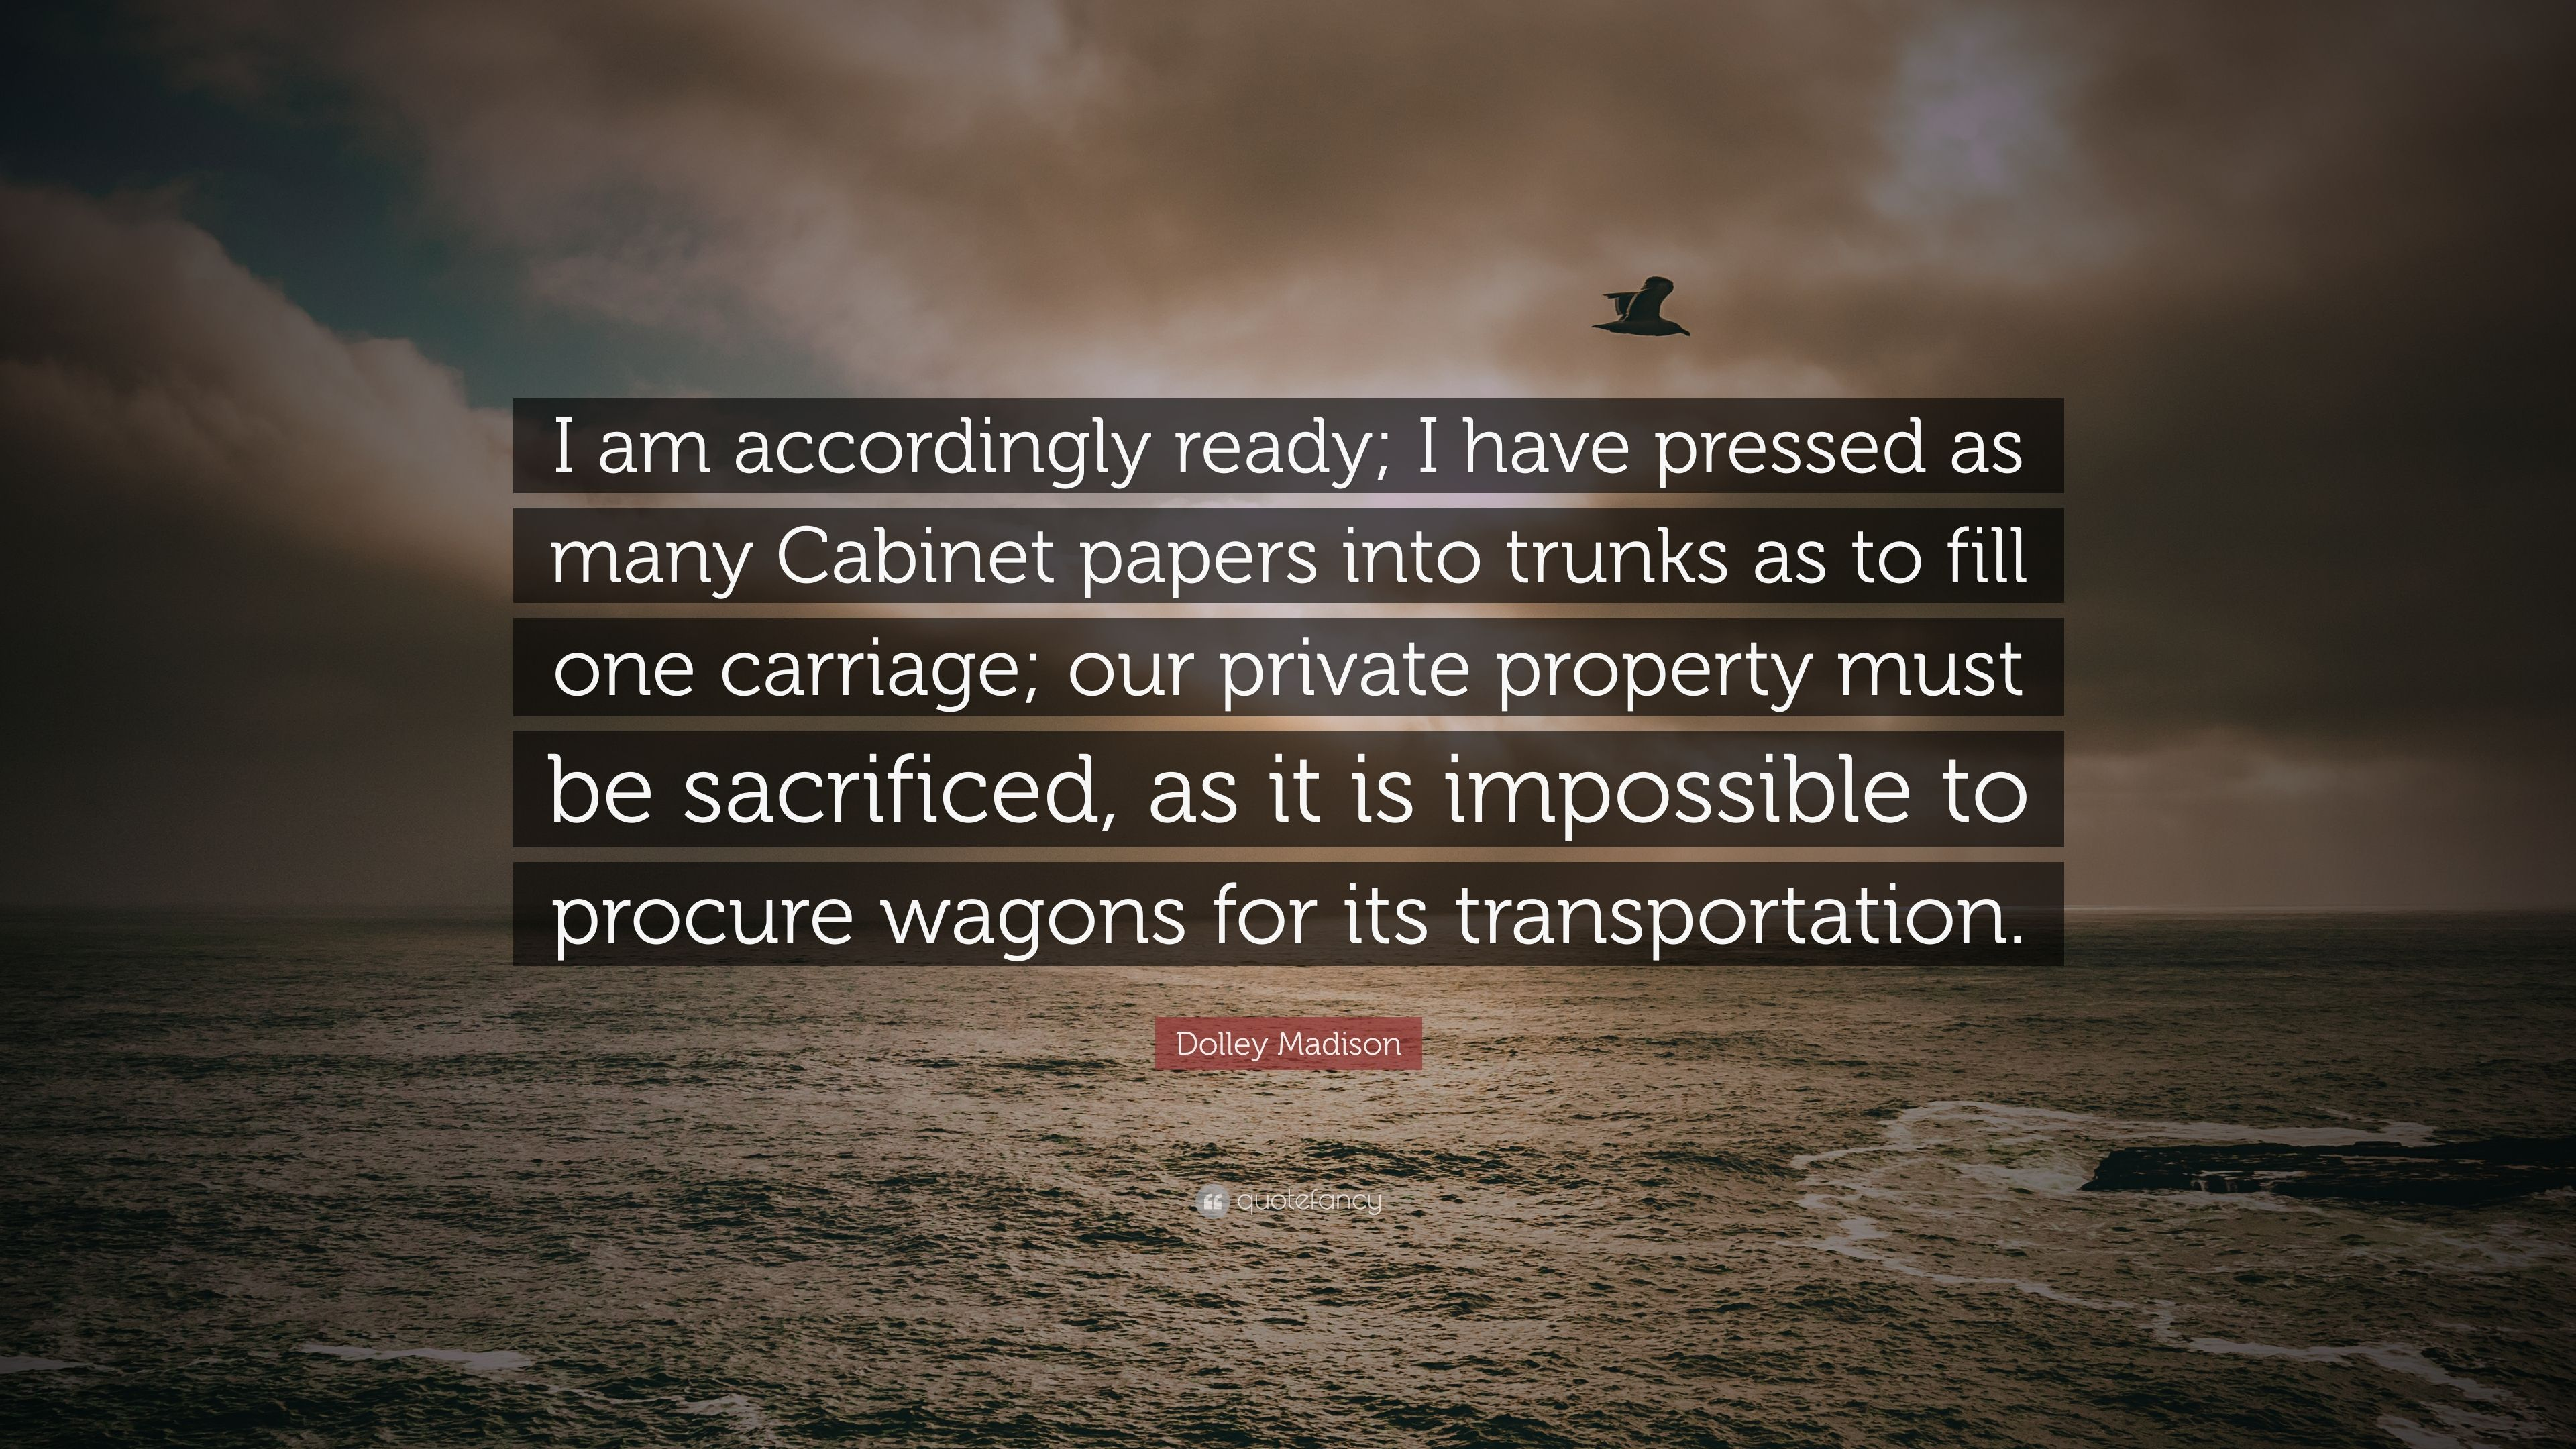 Dolley Madison Quotes | Dolley Madison Quote I Am Accordingly Ready I Have Pressed As